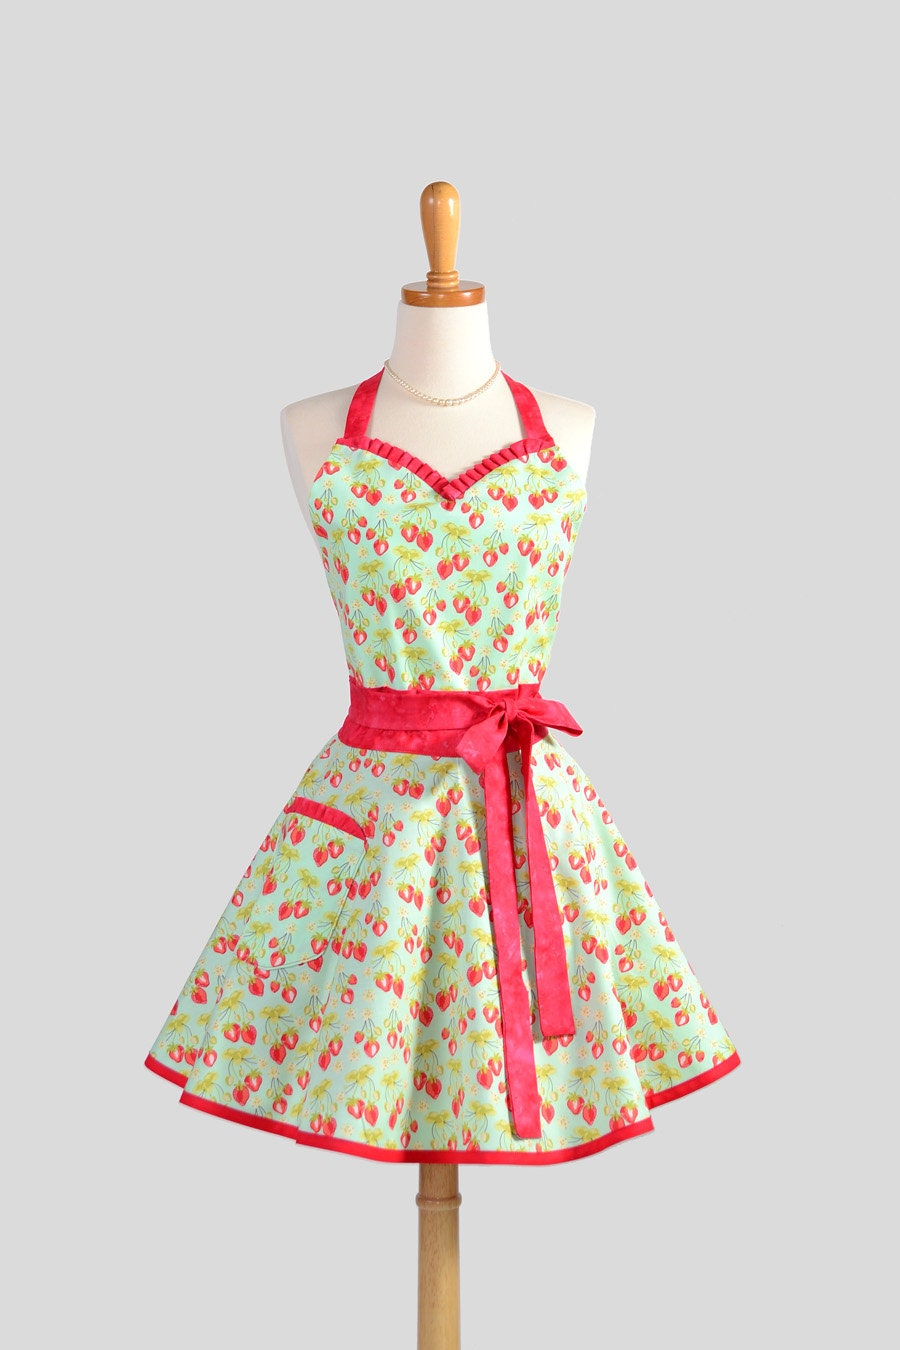 Sweetheart retro apron sexy kitchen apron in cute and for Apron designs and kitchen apron styles